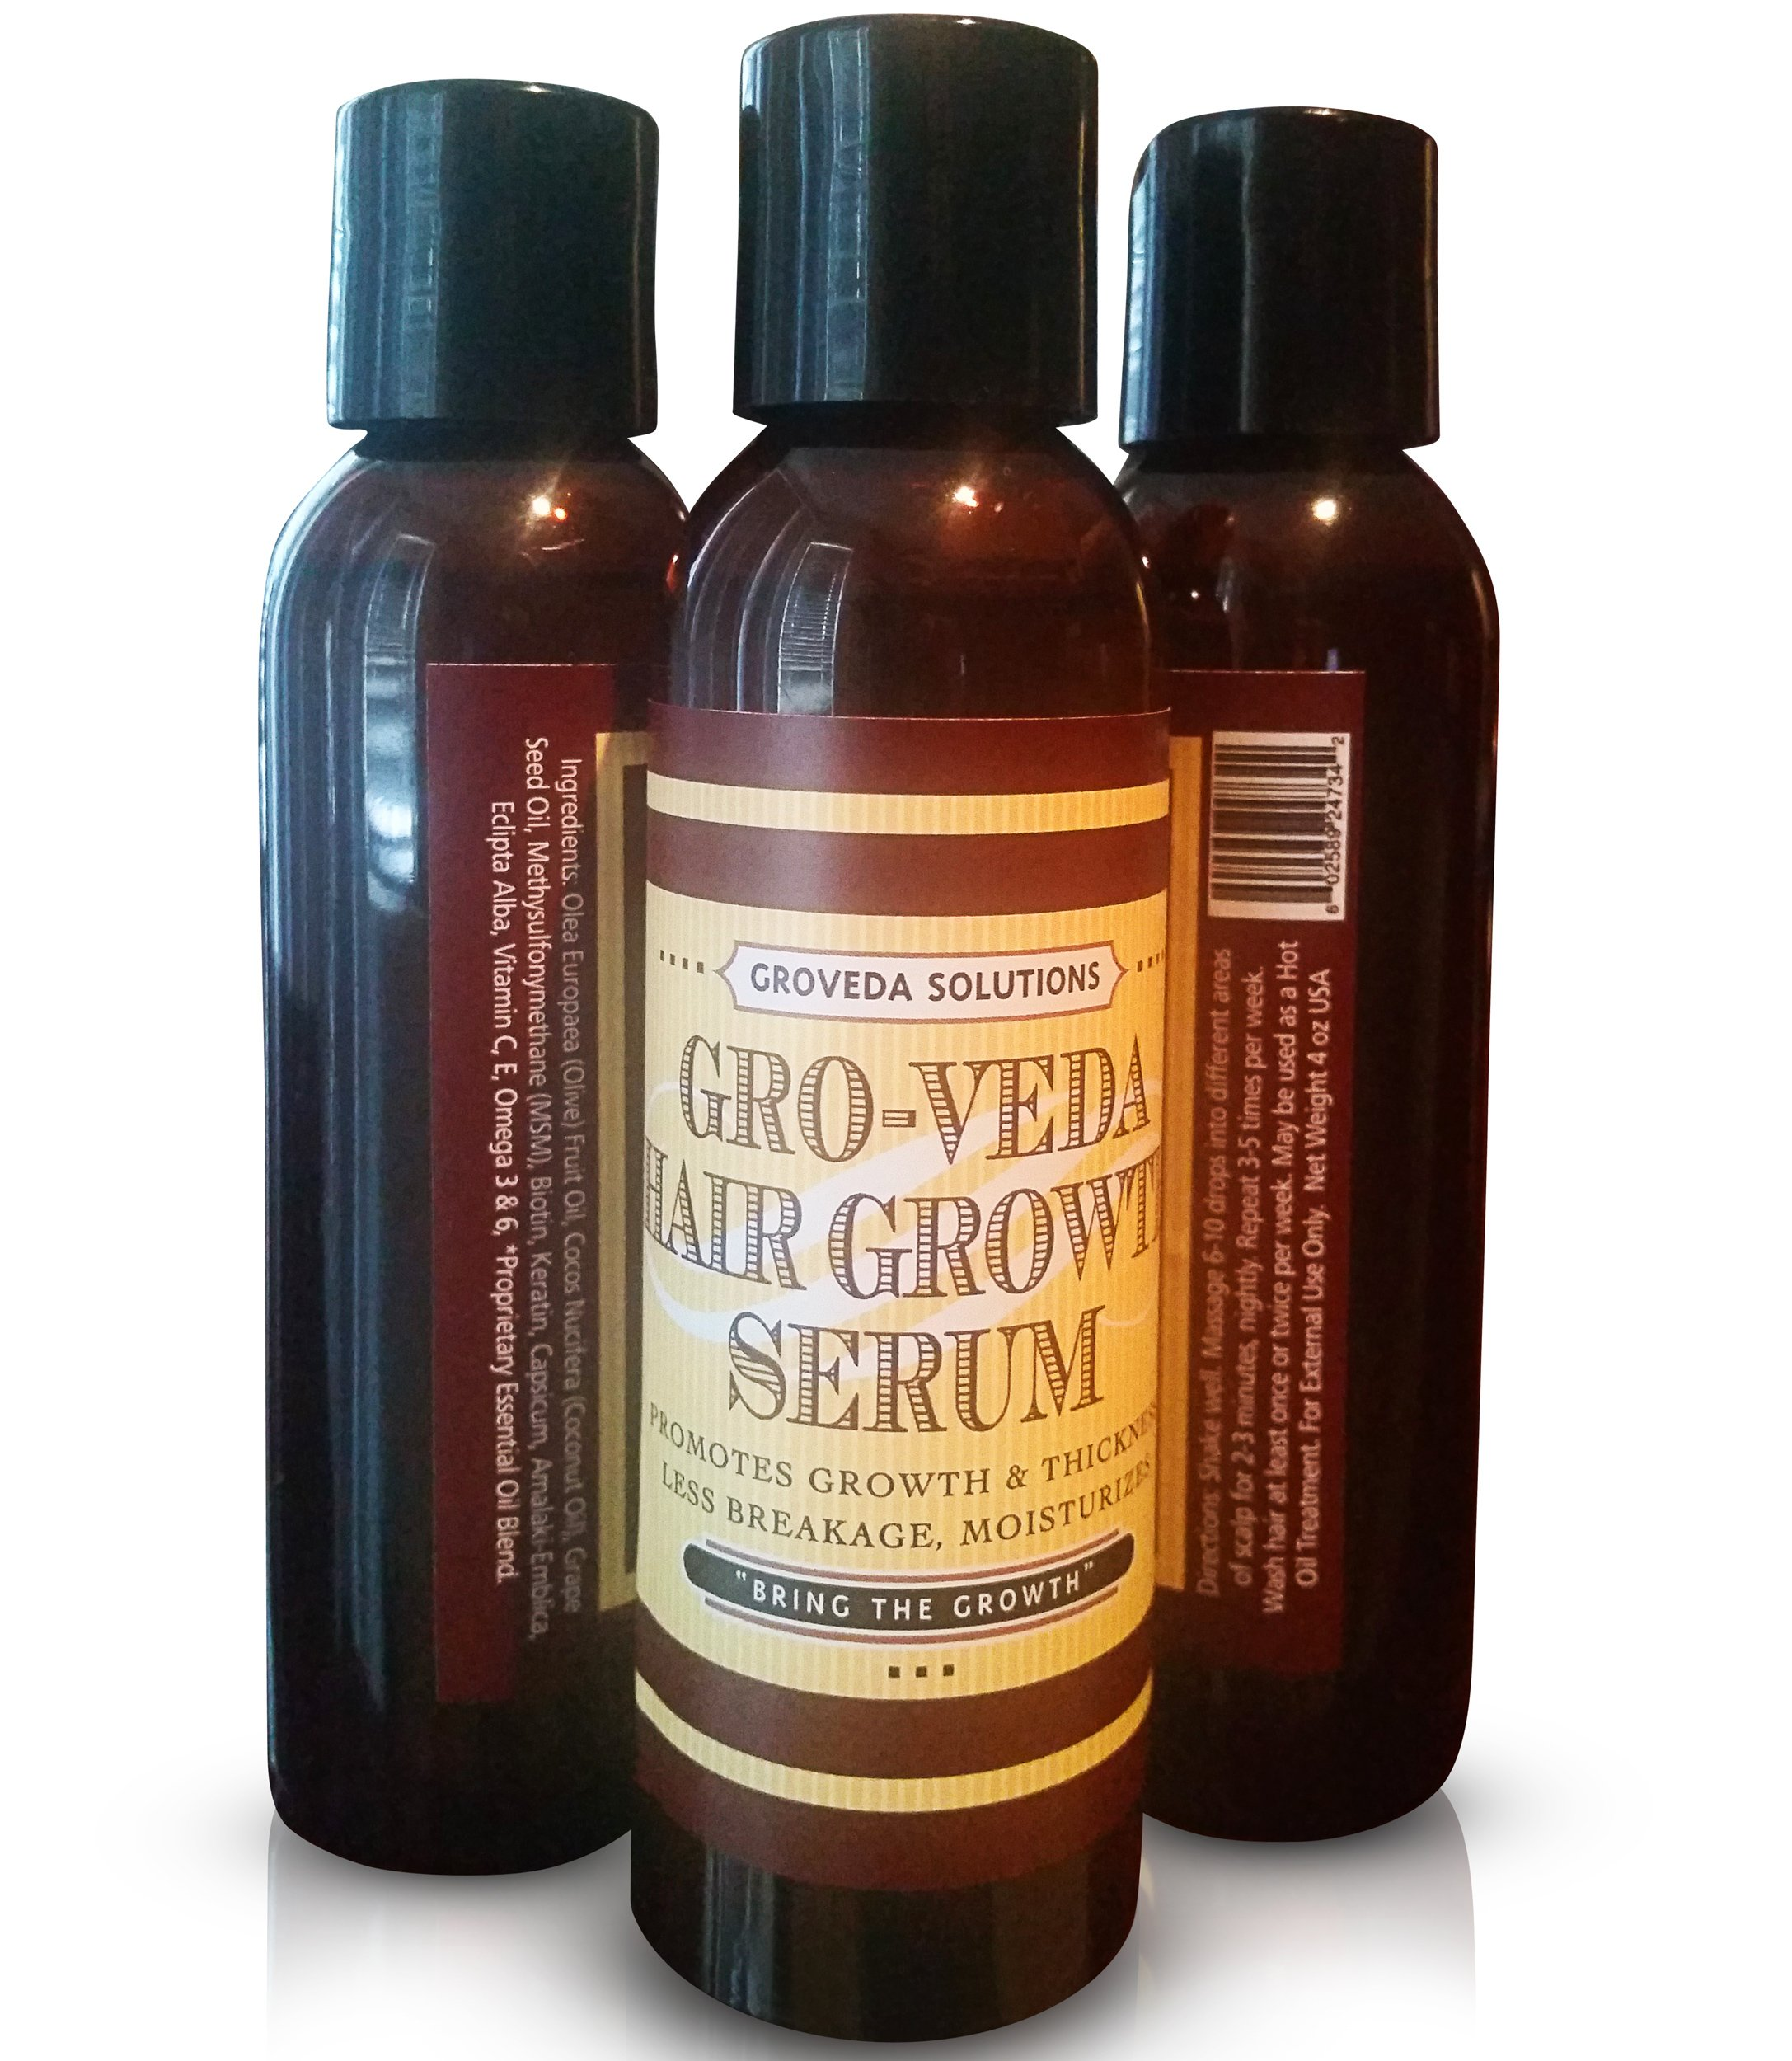 Groveda Fast Hair Growth Product for Women with Peppermint, Amla, Coconut Oil